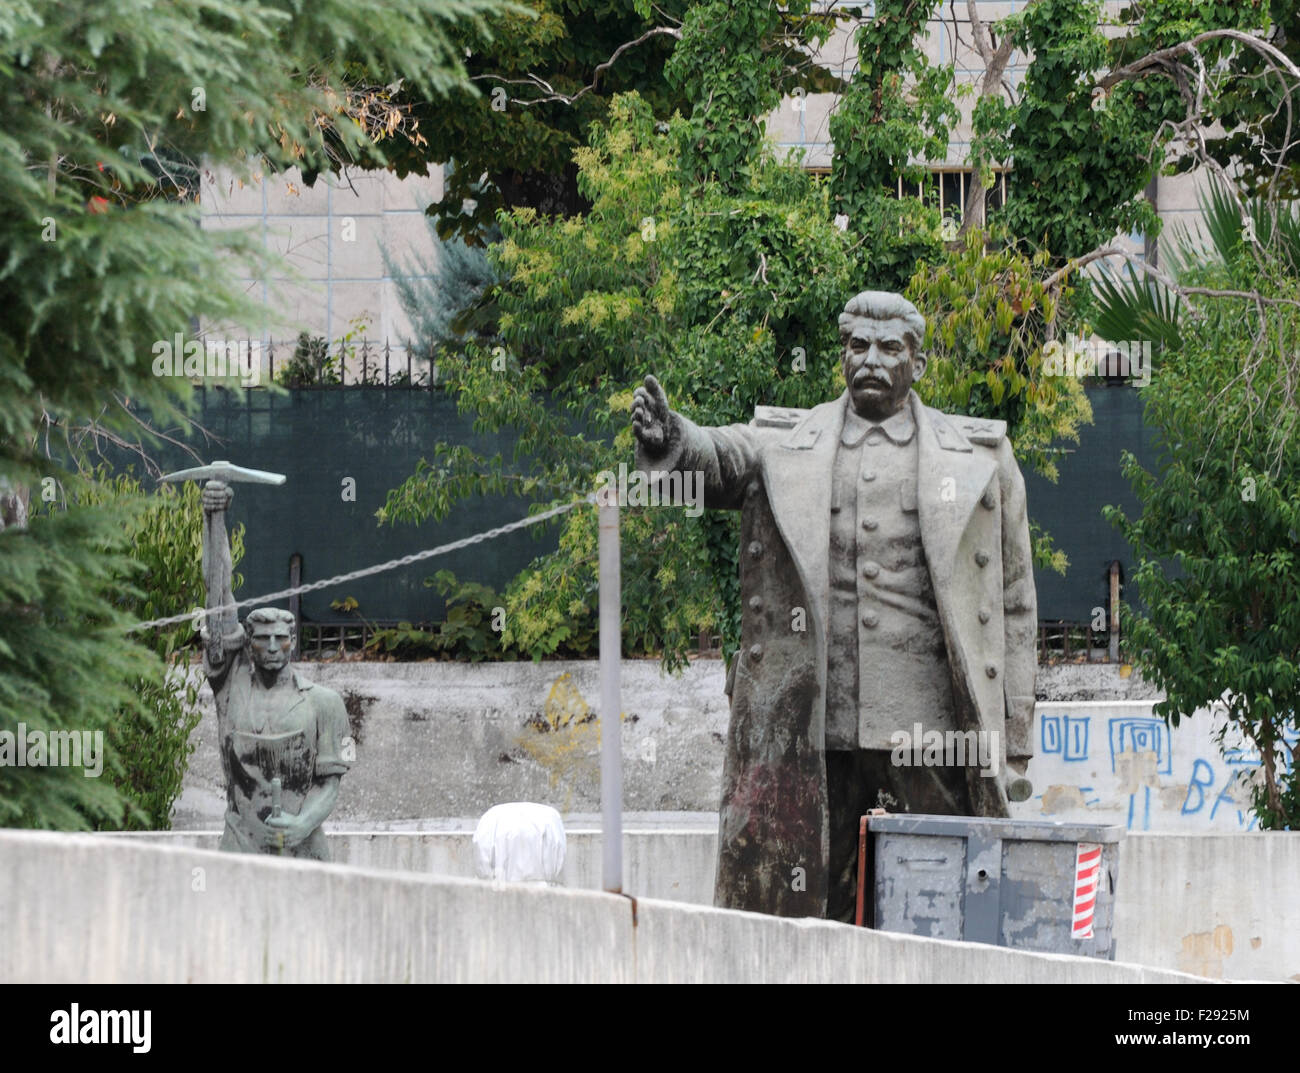 Statues of Joseph Stalin and a worker banished from prominent positions in Tirana to a yard behind the National - Stock Image